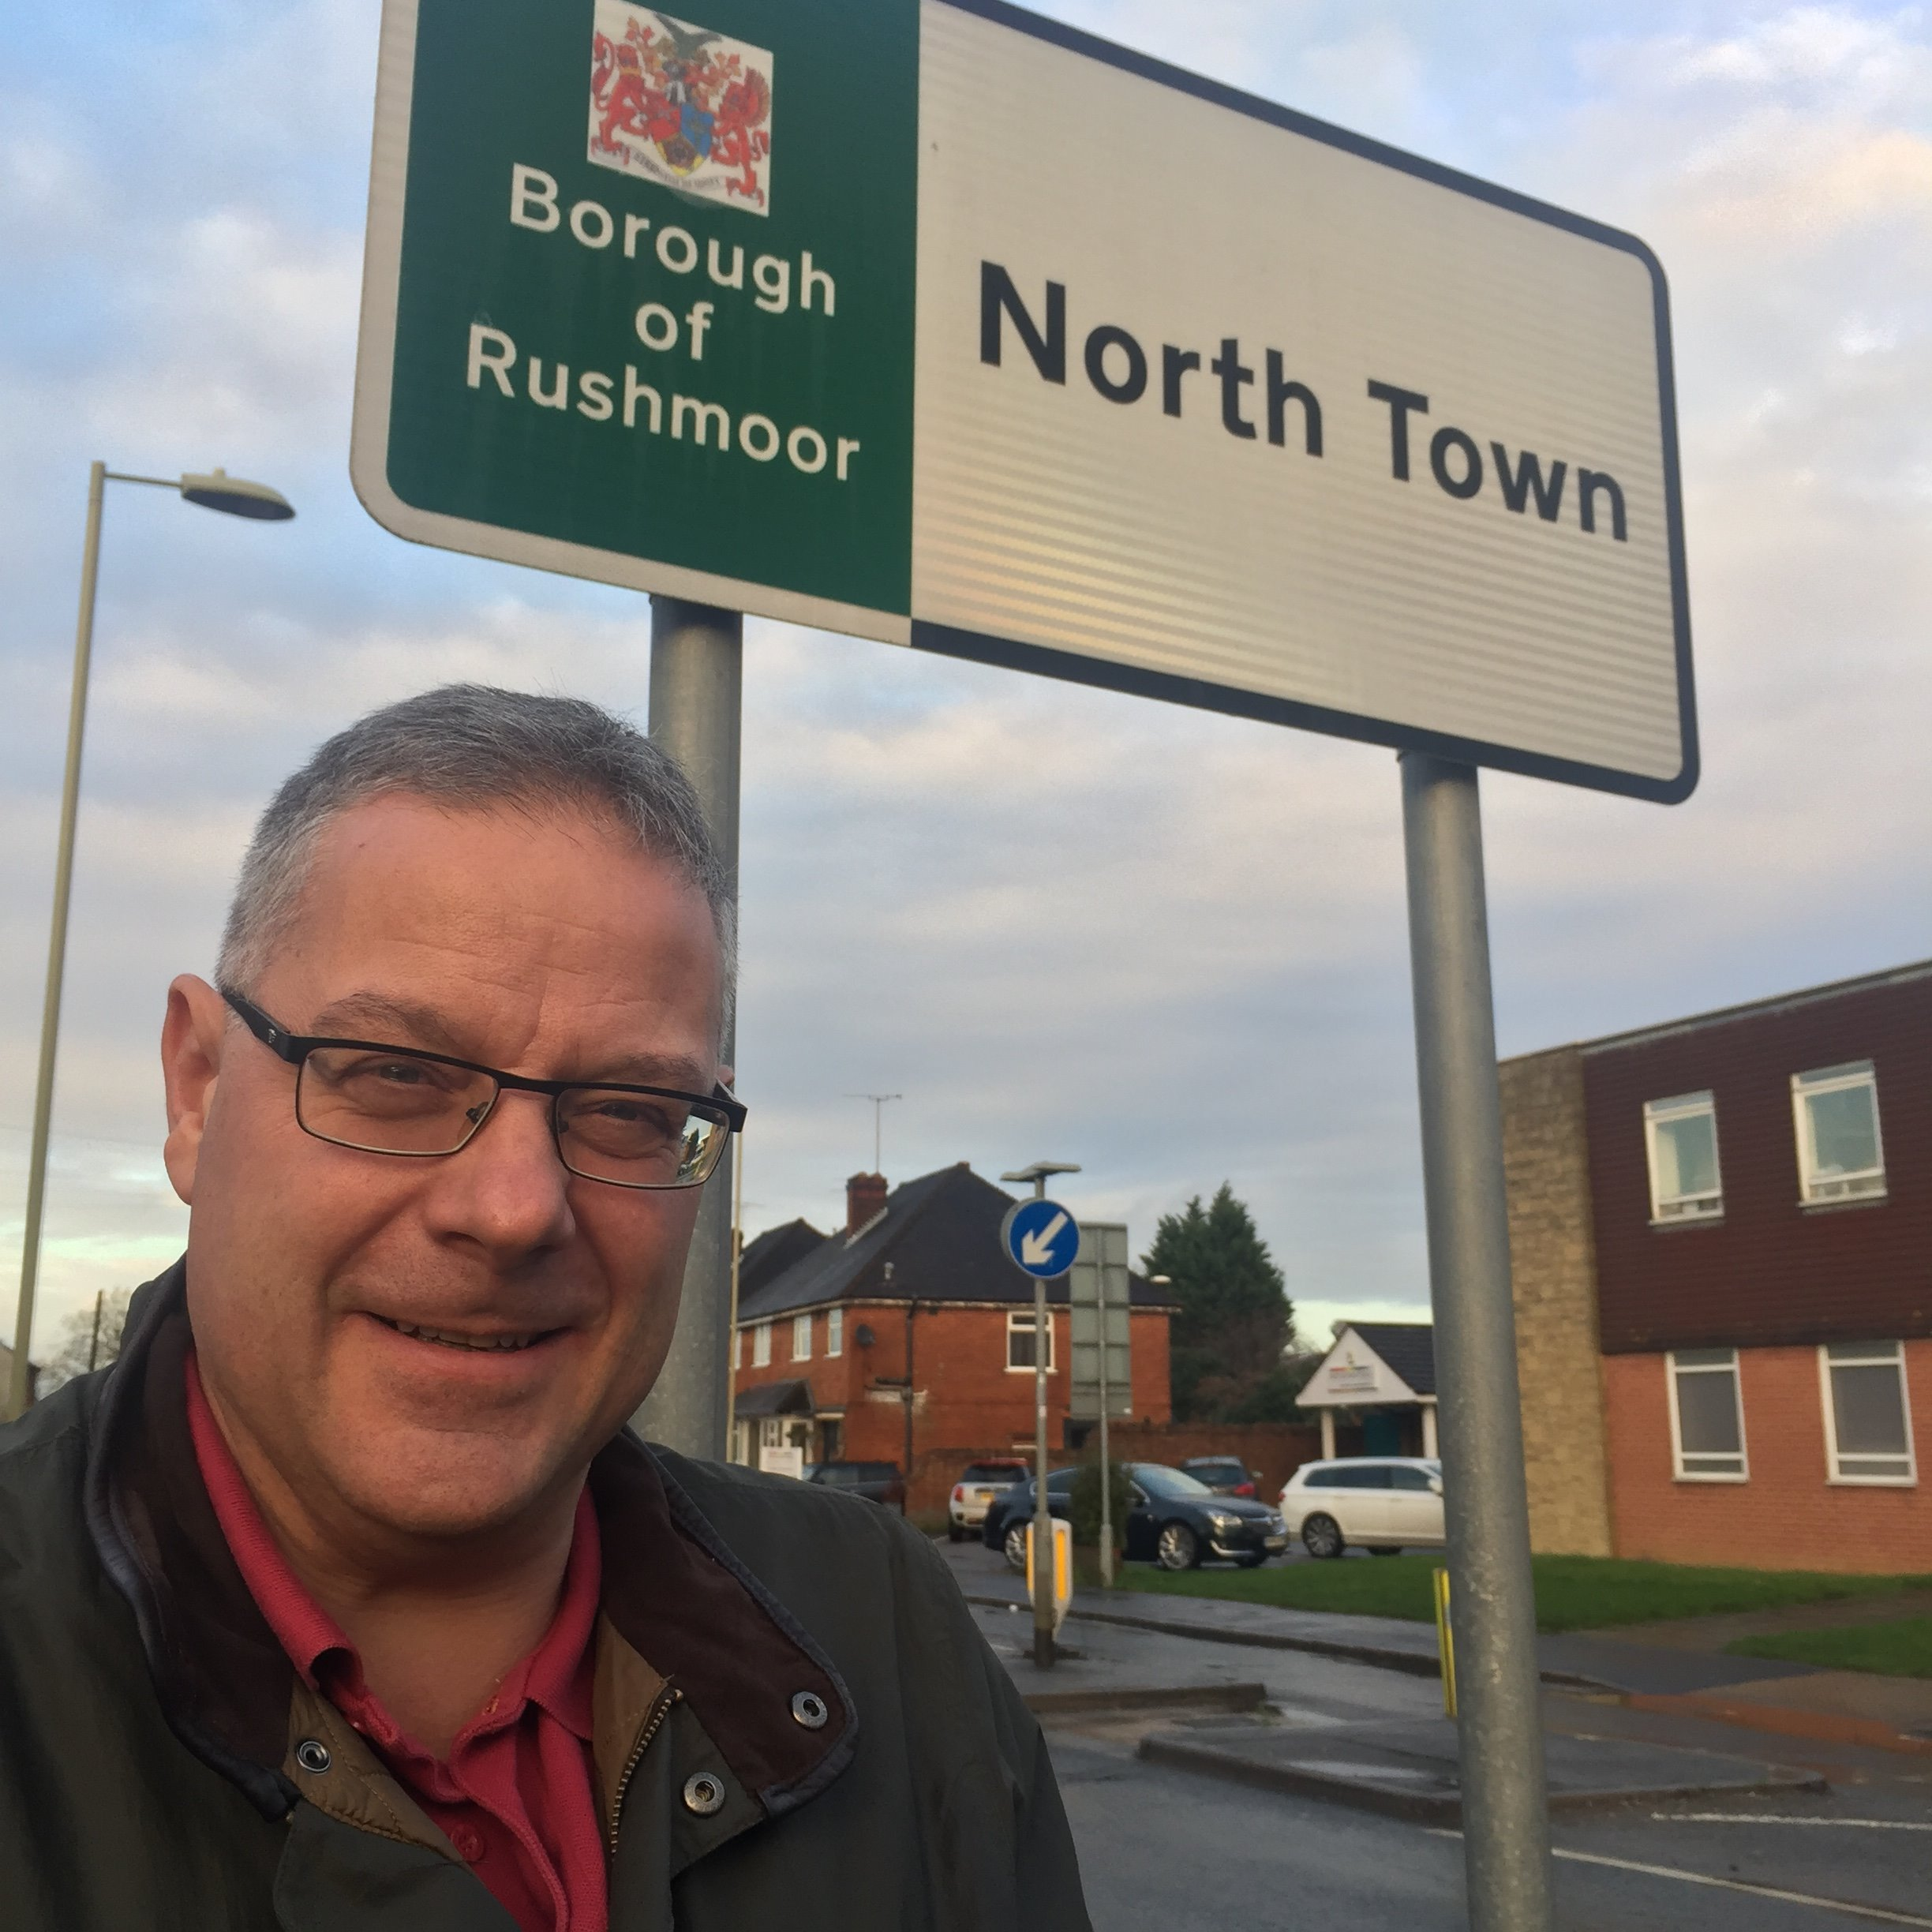 Stuart Trussler On Twitter Good Afternoon North Town Campaign